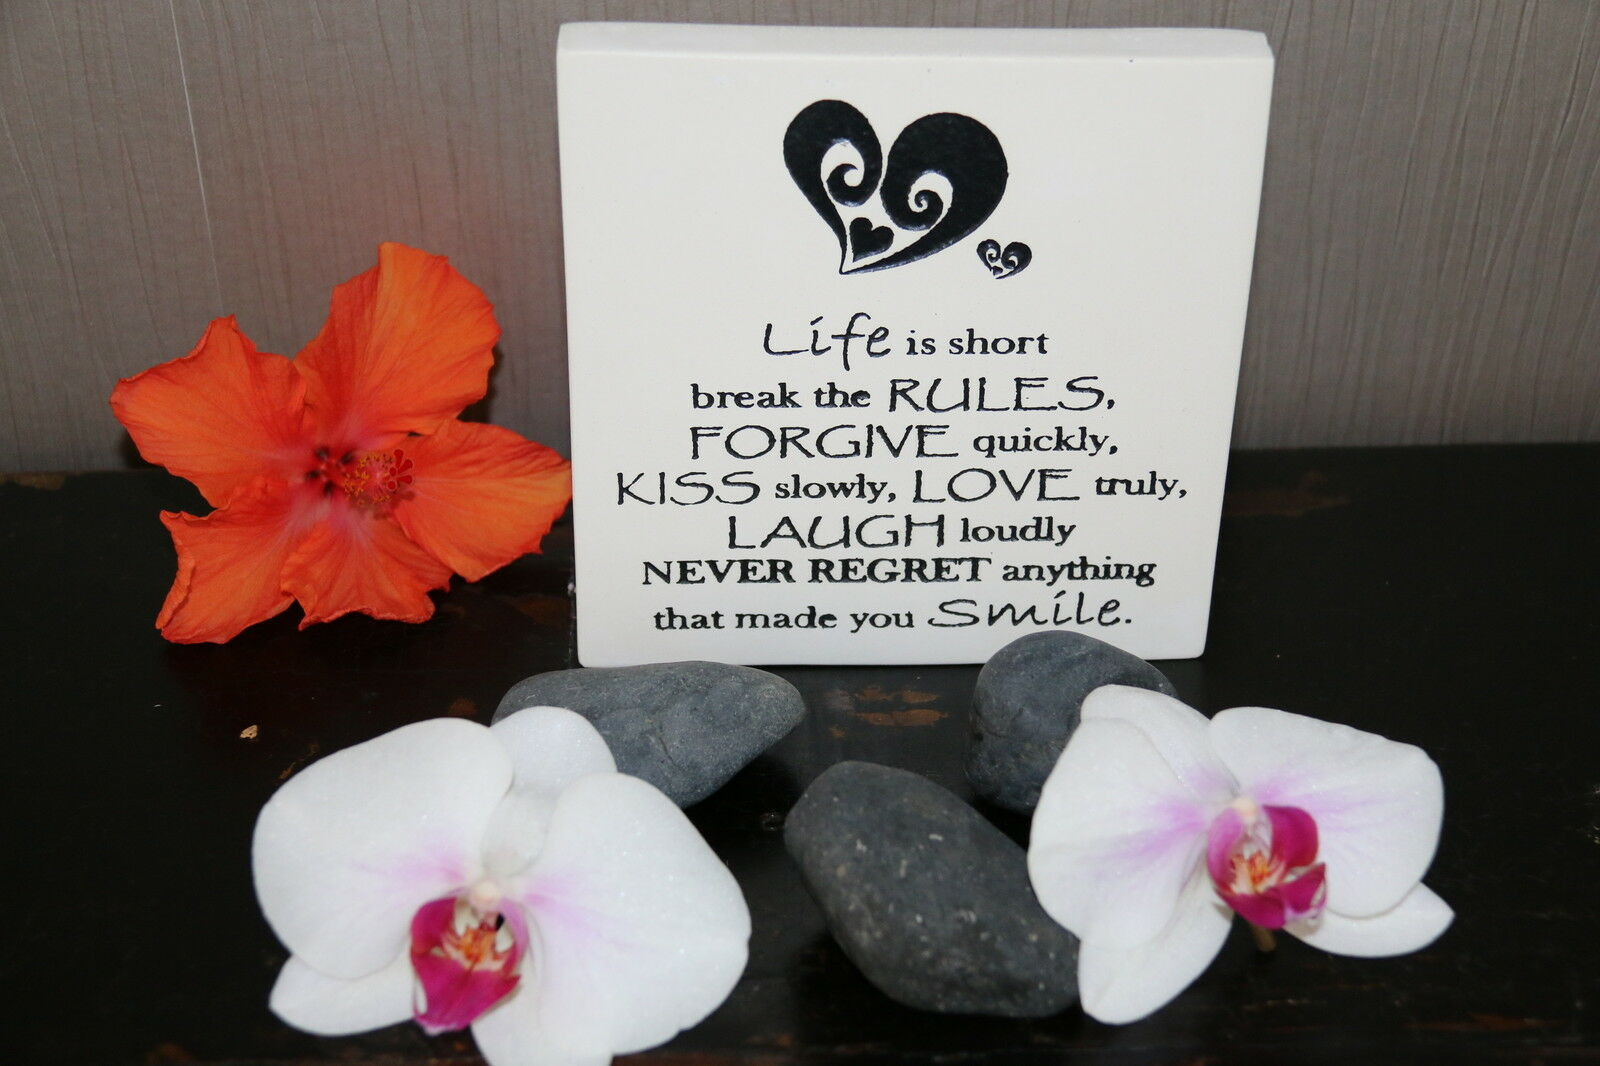 Brand New Balinese Free Standing LIFE RULES Affirmation Plaque